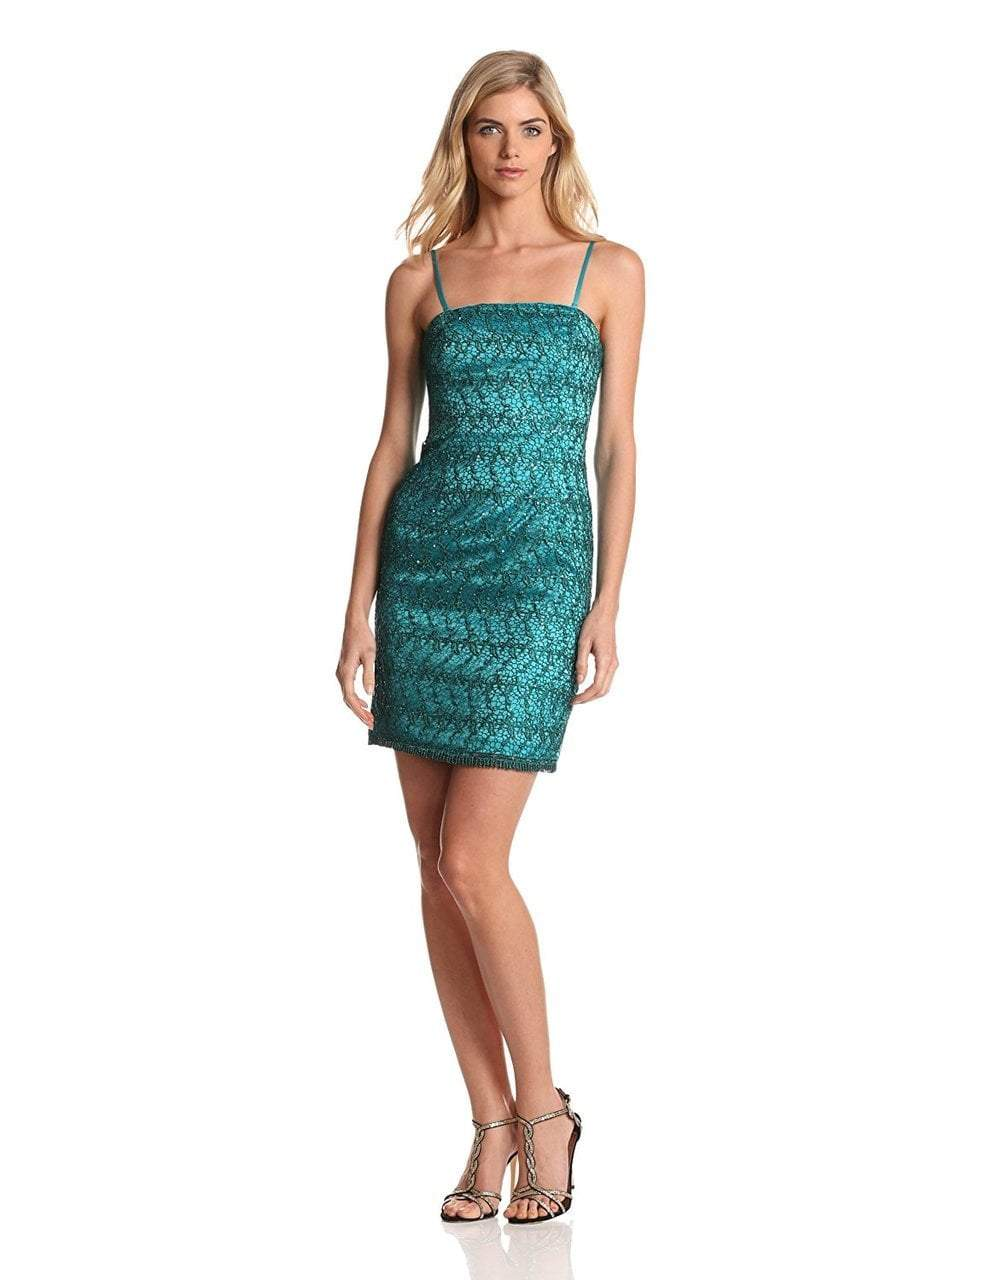 Adrianna Papell - 41872340 Strapless Sequined Lace Cocktail Dress in Green